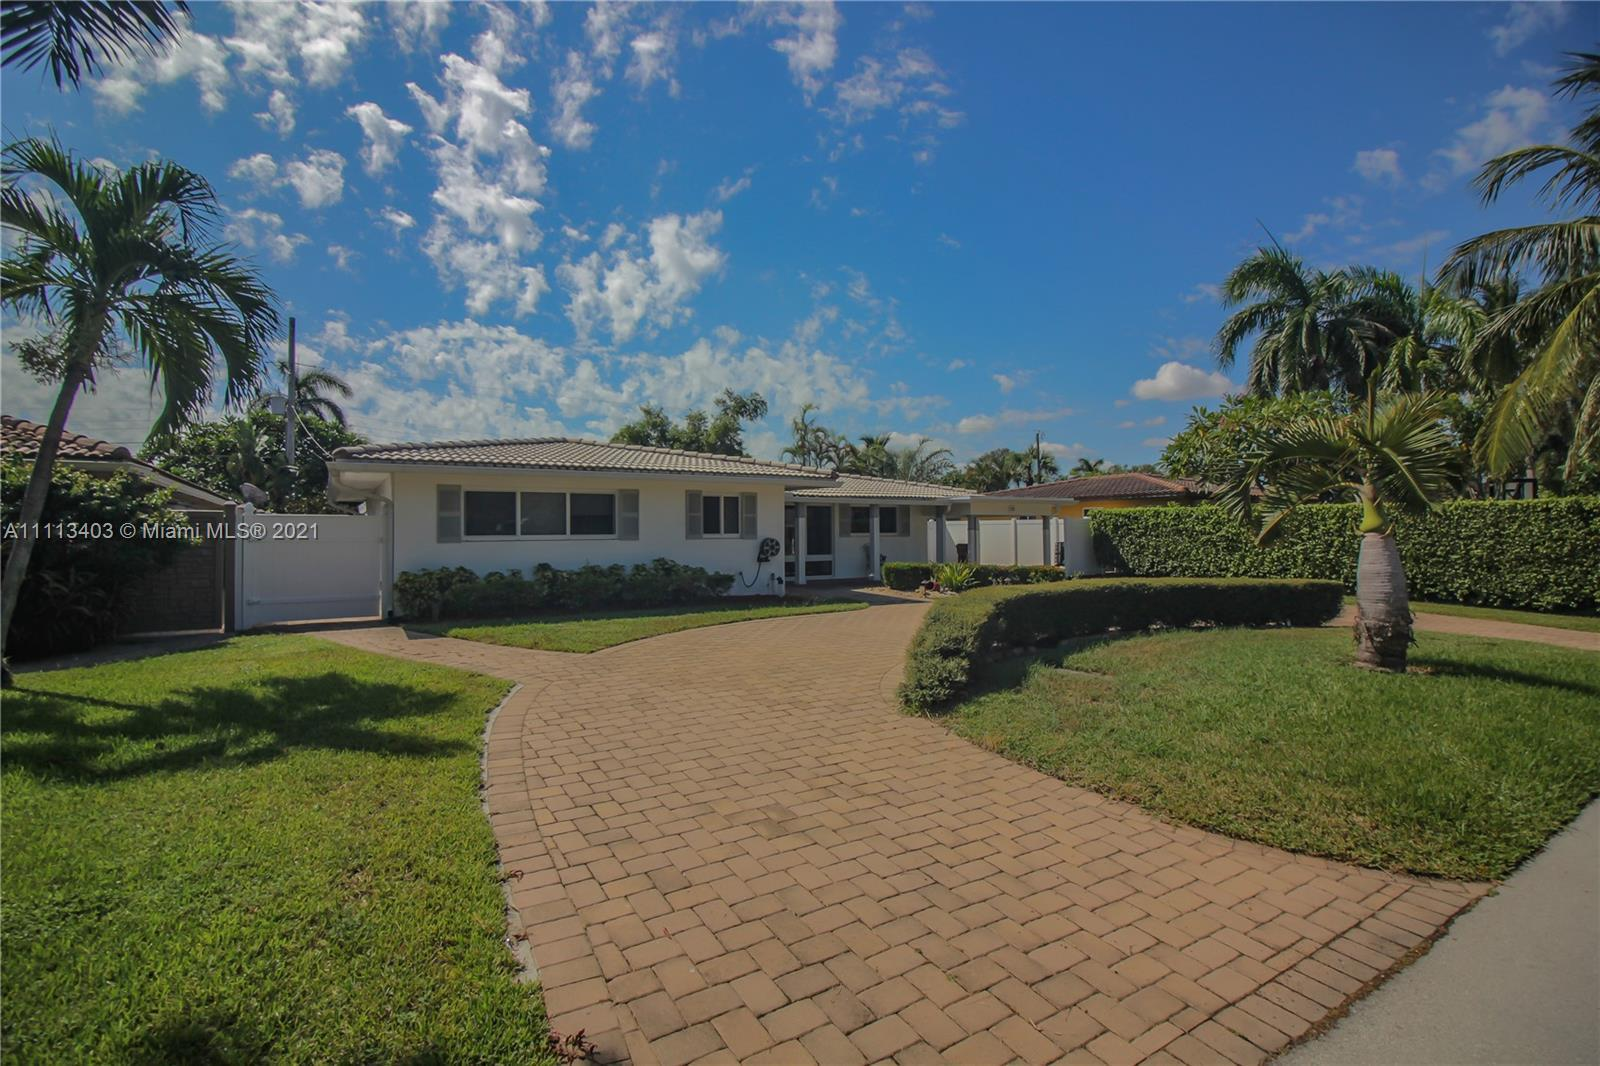 GREAT LOCATION! This home is ideally located in the heart of The Cove neighborhood. Walking distance